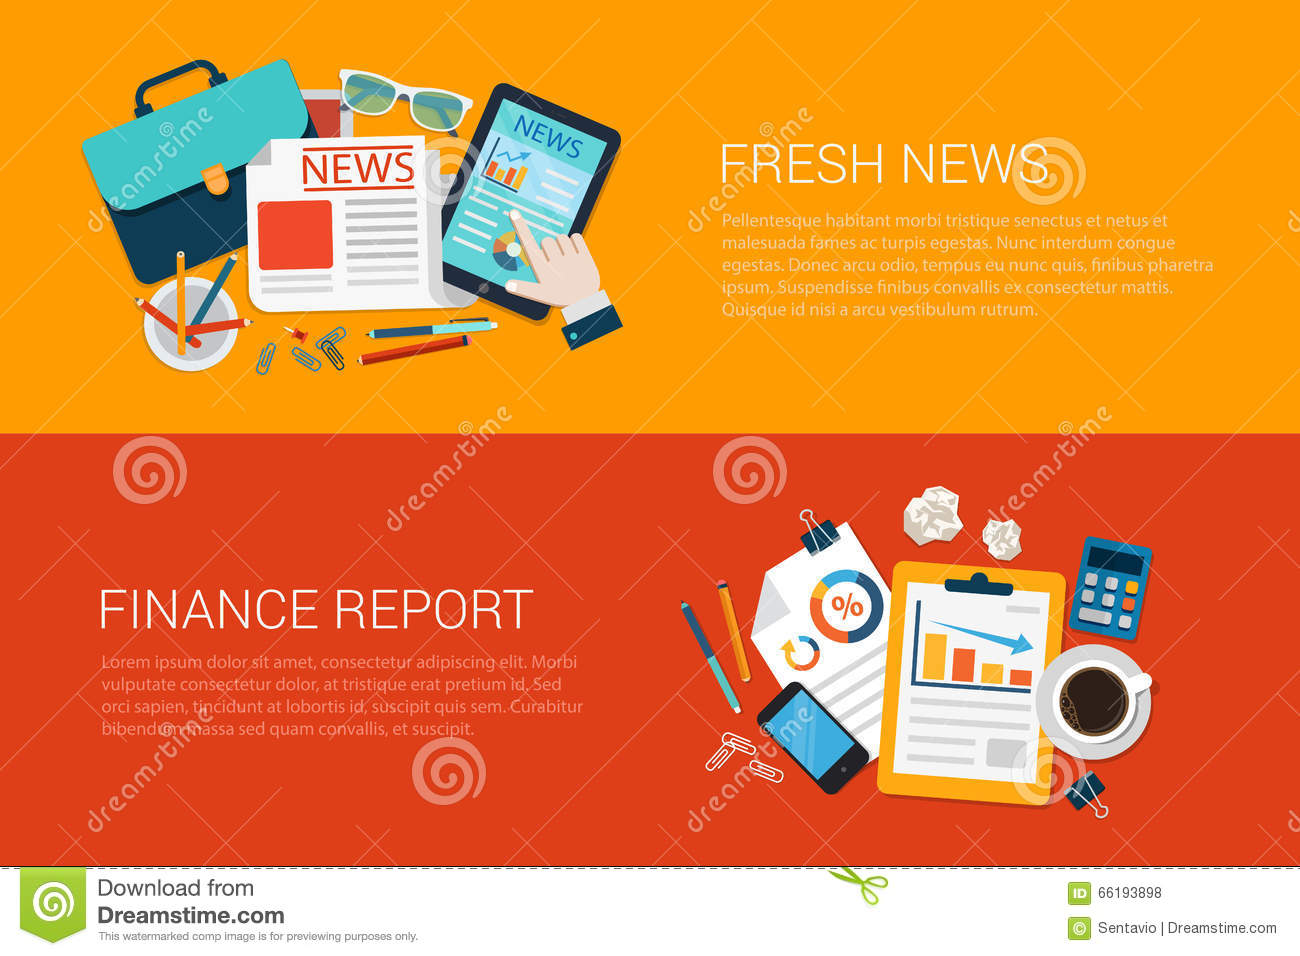 flat vector web banners collage fresh news online finance report